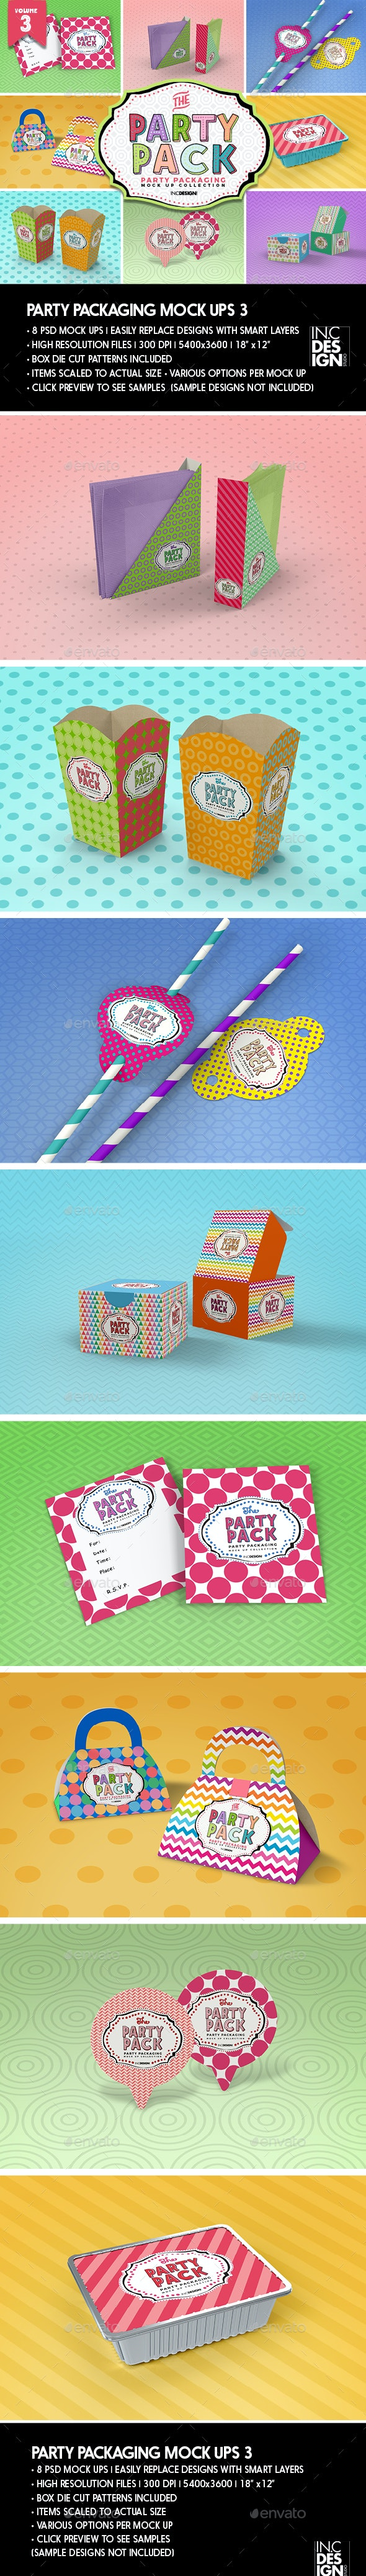 The Party Pack Packaging Mock Ups 3 - Packaging Product Mock-Ups